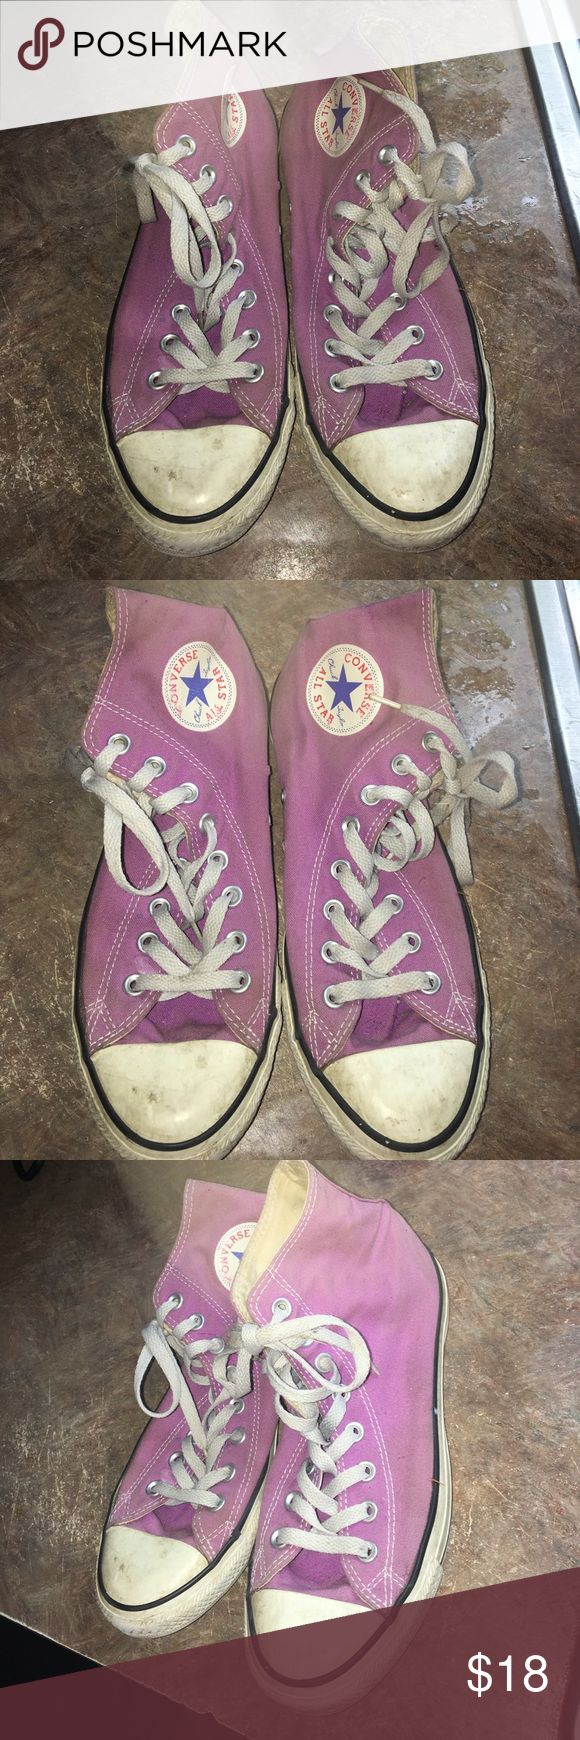 Pink/Purple Converse All Star Shoes Worn Converse Shoes. Can be cleaned Converse Shoes Sneakers